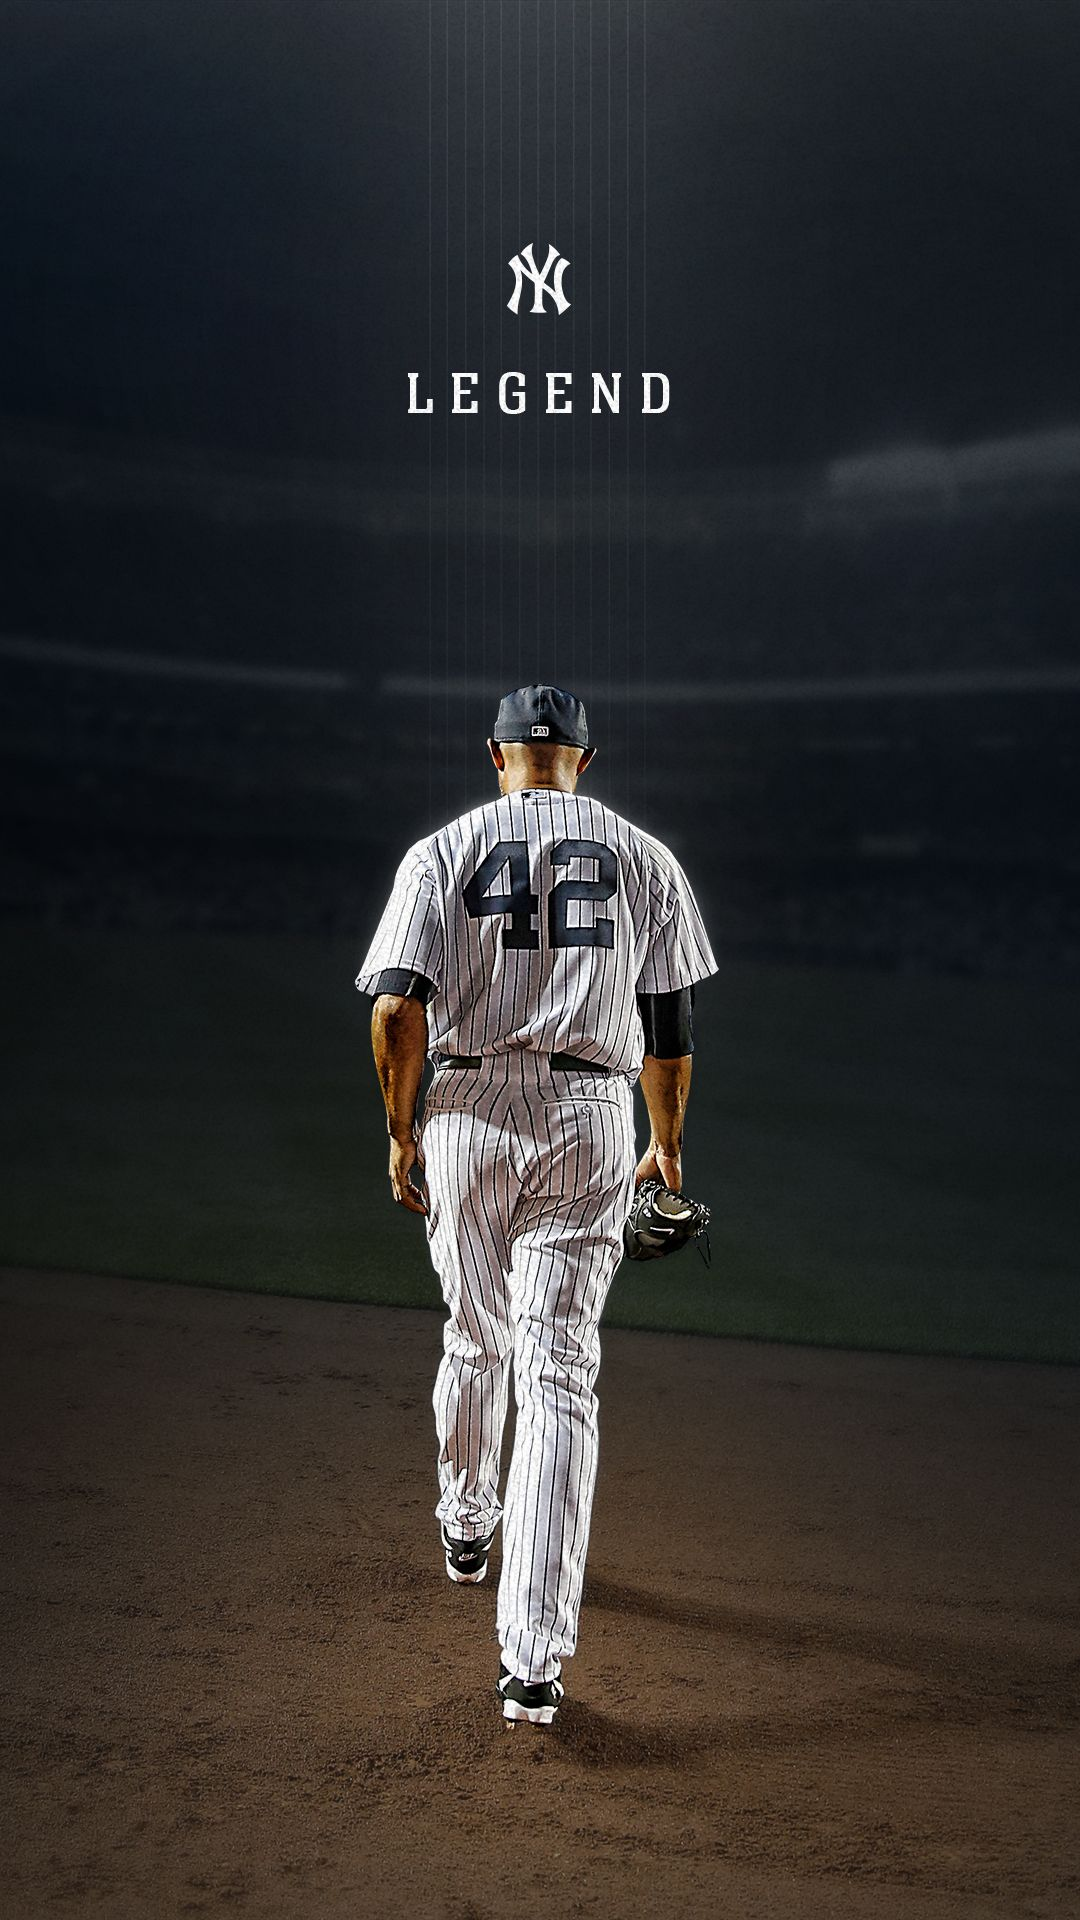 Mlb Baseball Background Picture In 2020 New York Yankees Yankees Baseball Players Yankees Baseball